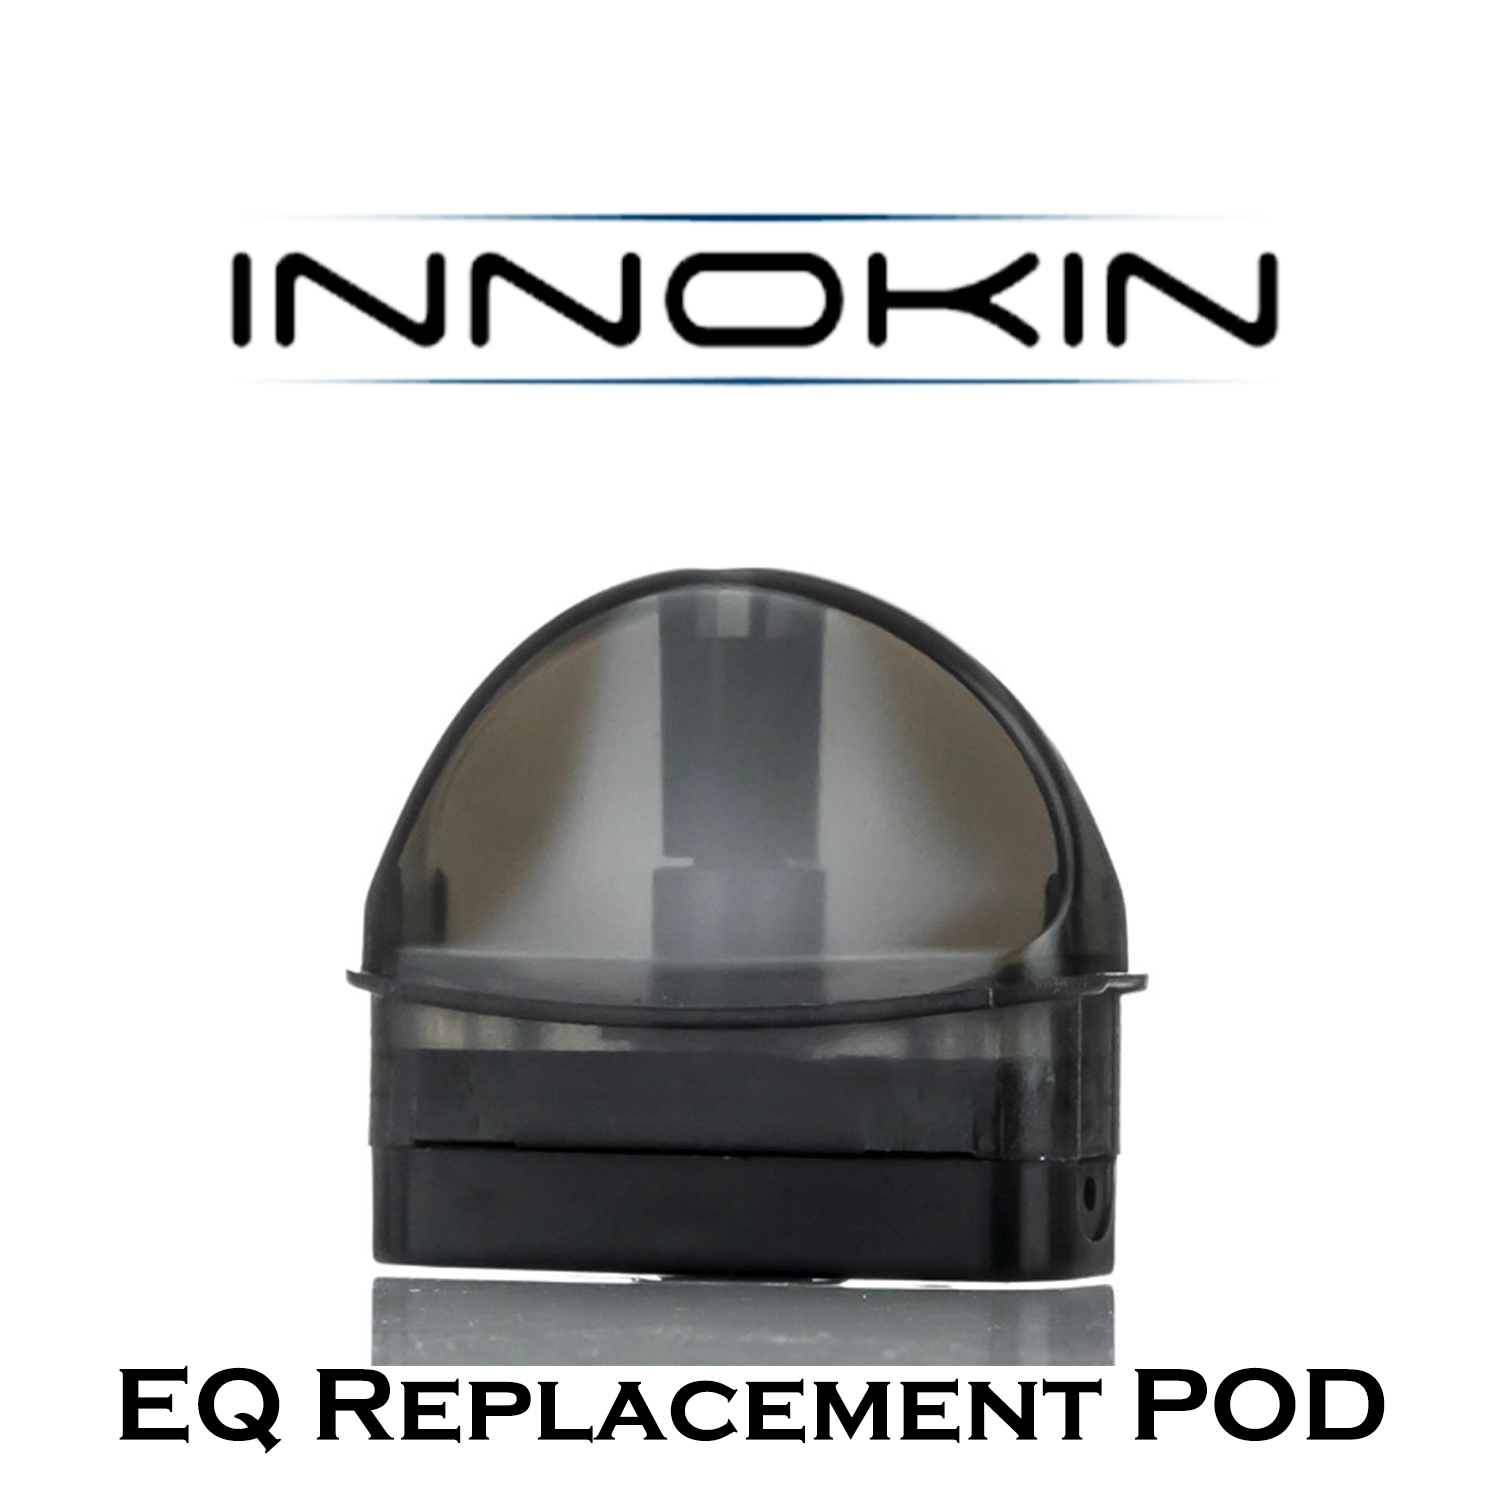 Innokin EQ Replacement POD - Boss Vapes